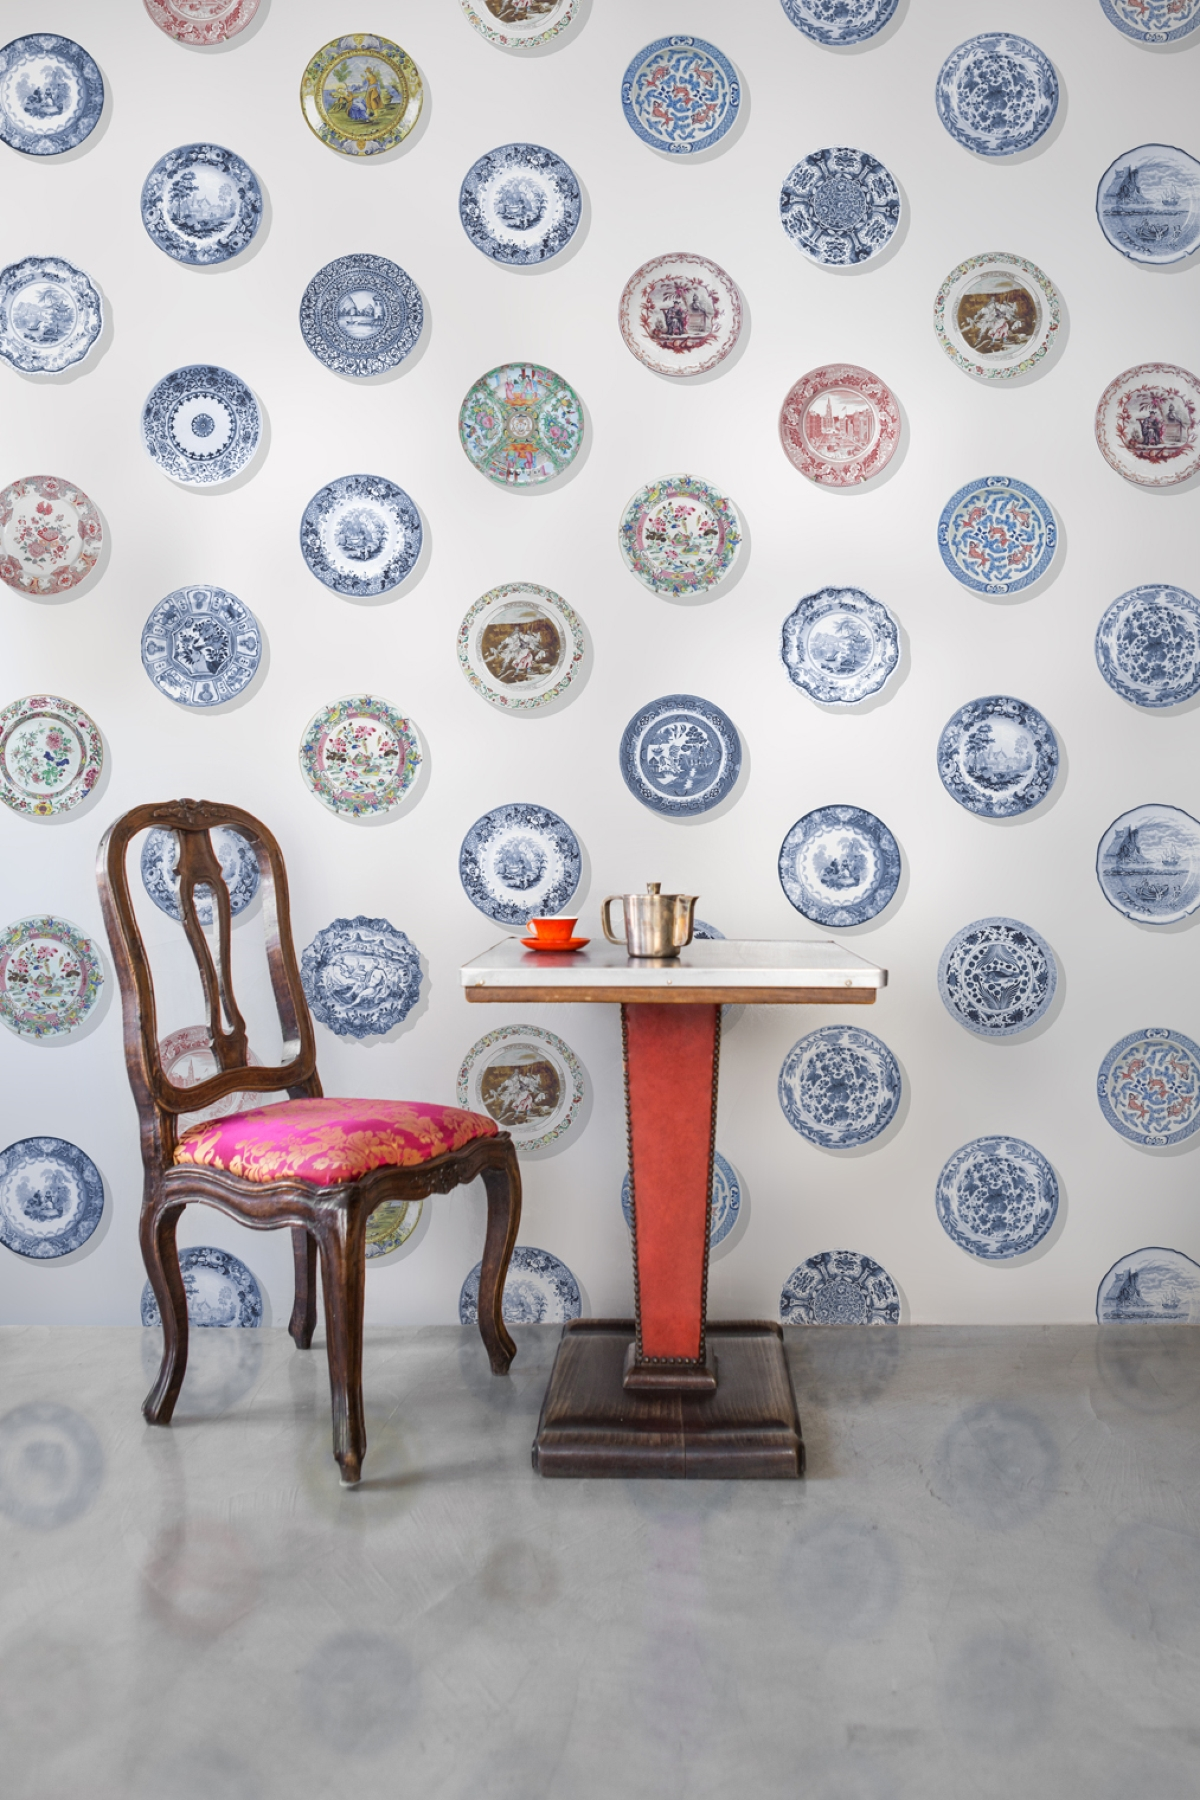 Addiction wallpapers by Vito Nesta, plates